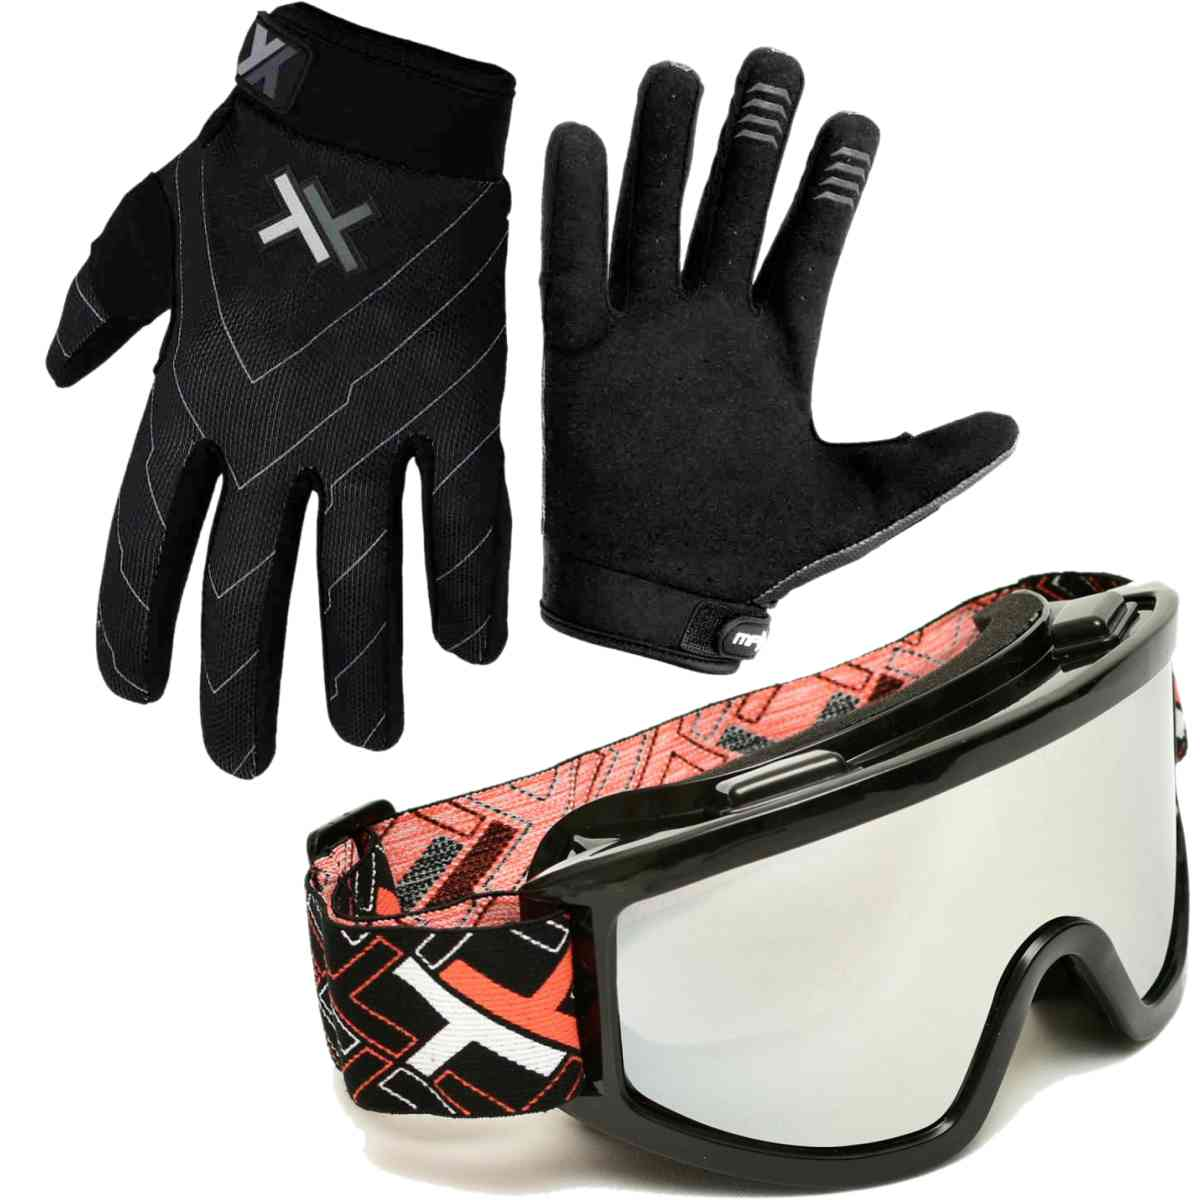 OCULOS CROSS OFF-ROAD MATTOS RACING MX LENTE ESPELHADA + LUVA MOTOCROSS TRILHA ATOMIC